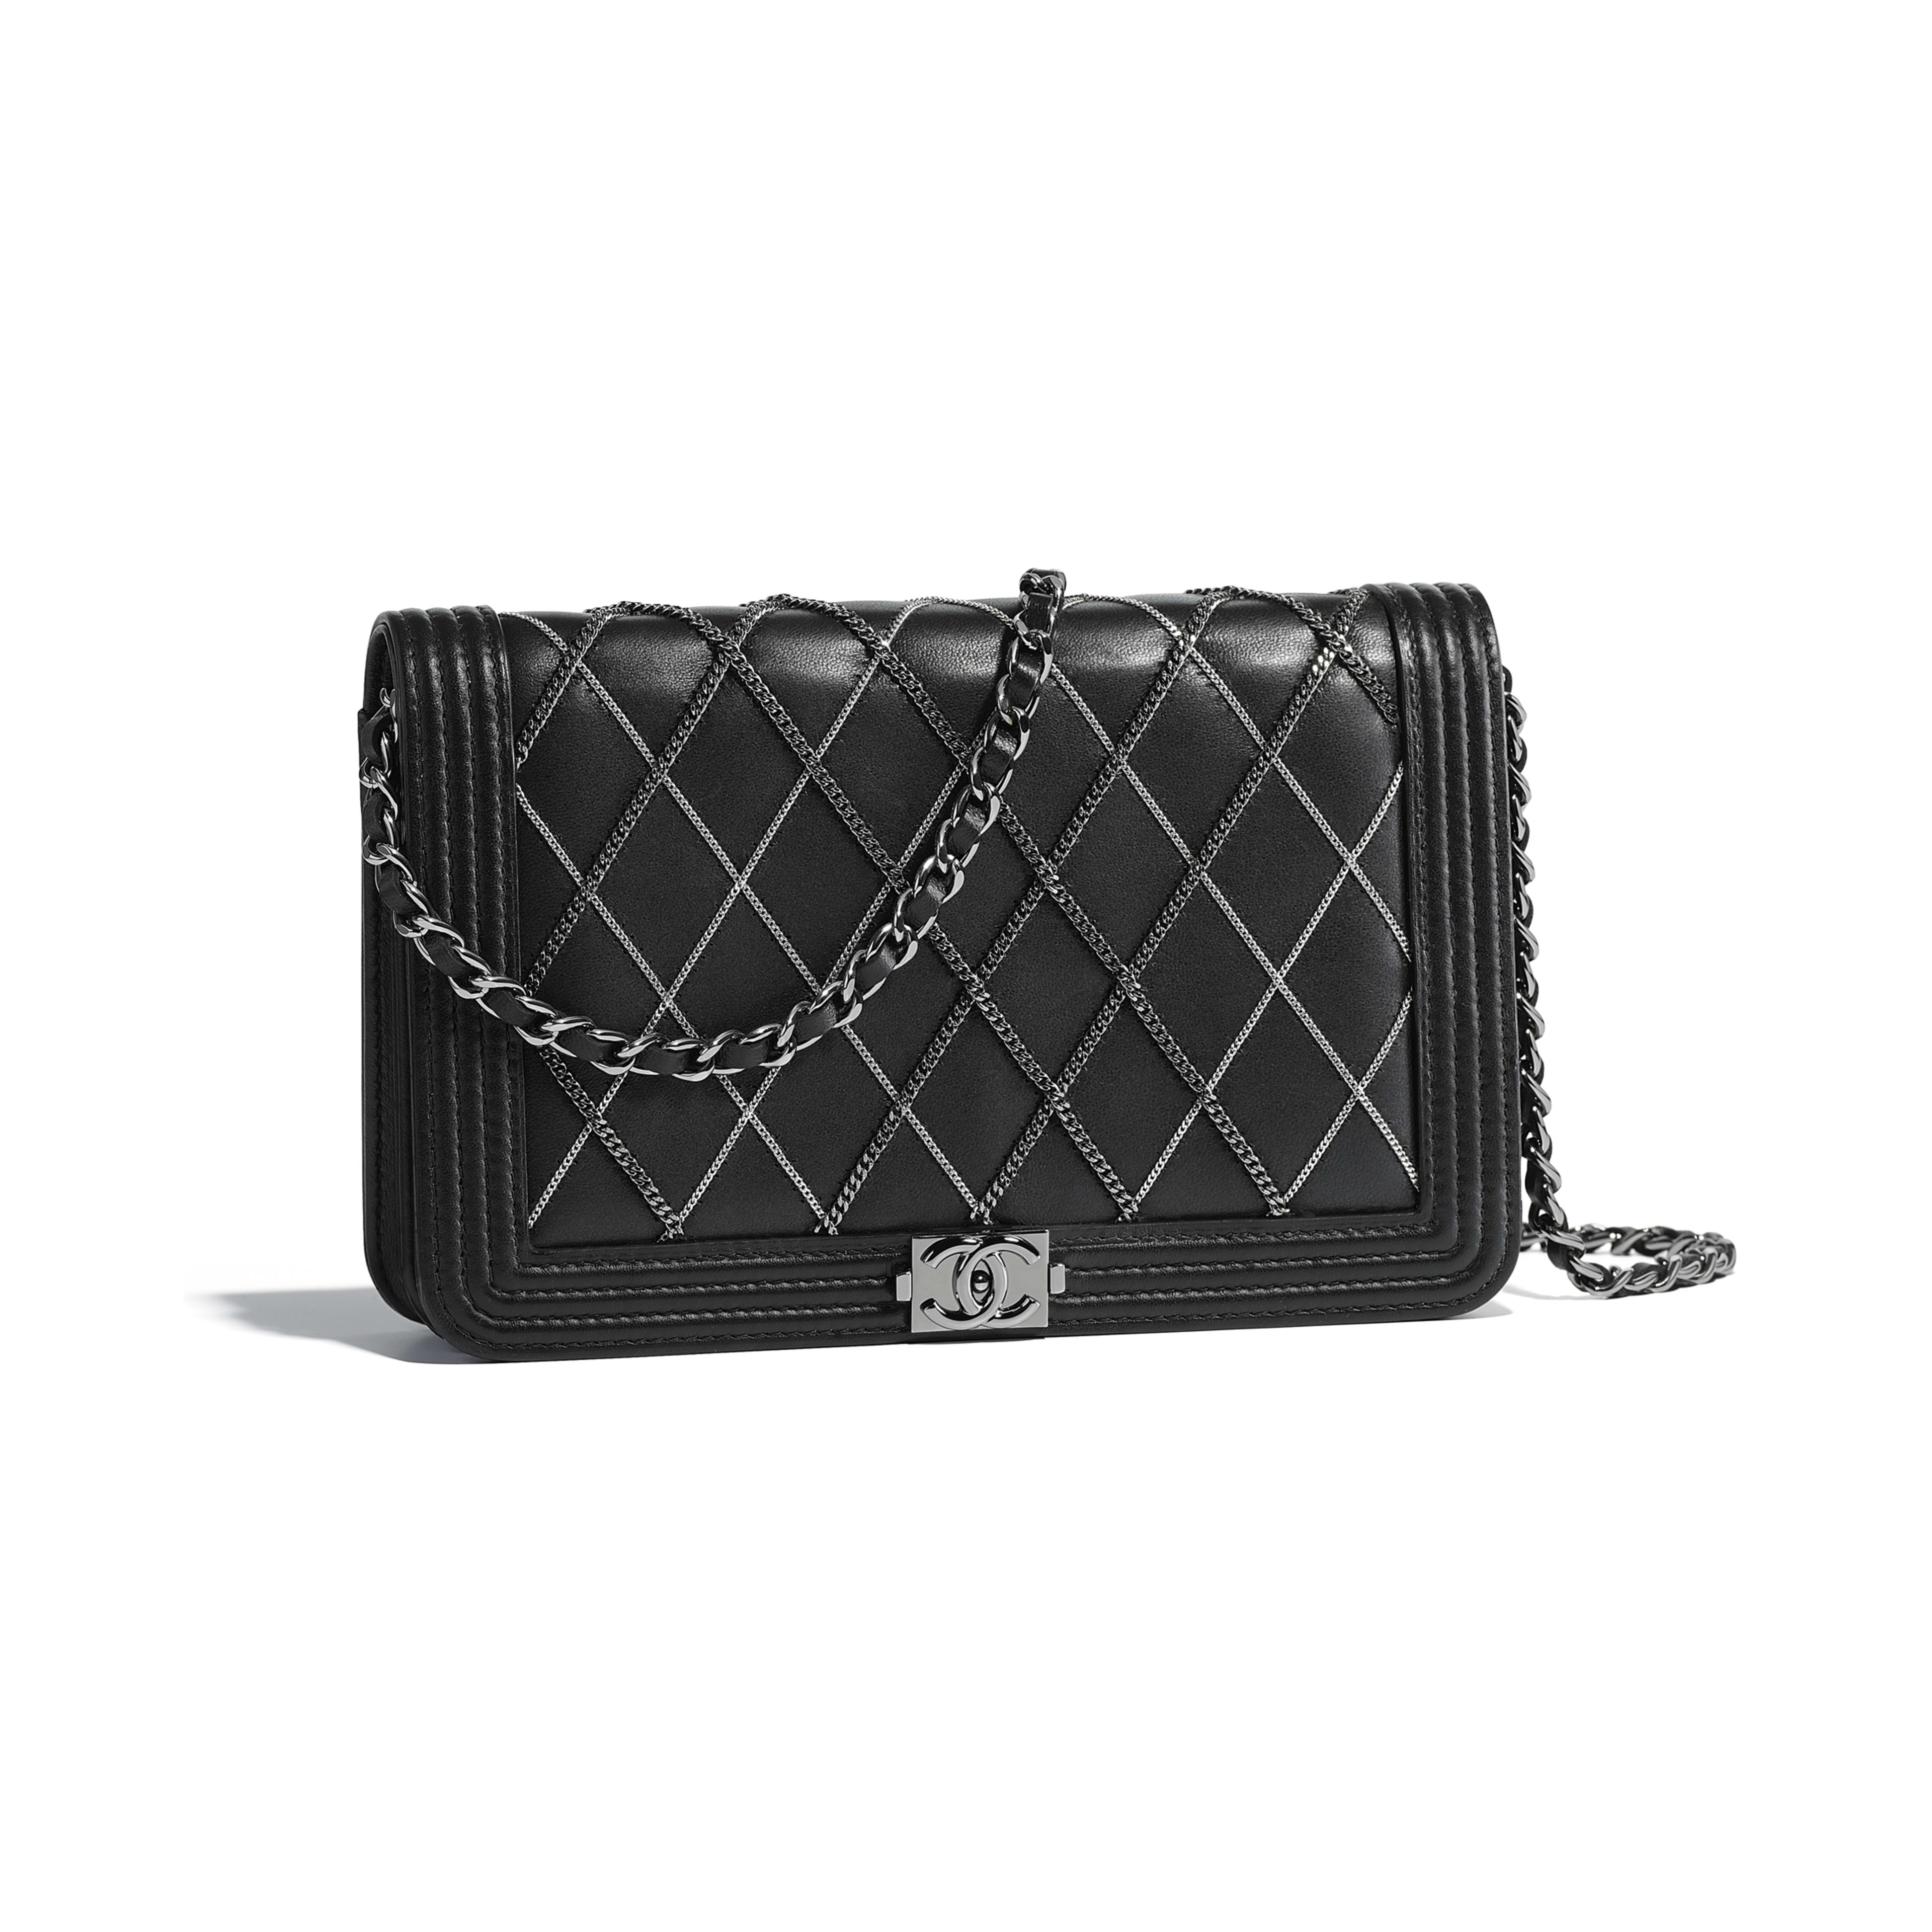 44f08c18816d Lambskin, Chains, Ruthenium-Finish & Silver-Tone Metal Black BOY CHANEL  Wallet